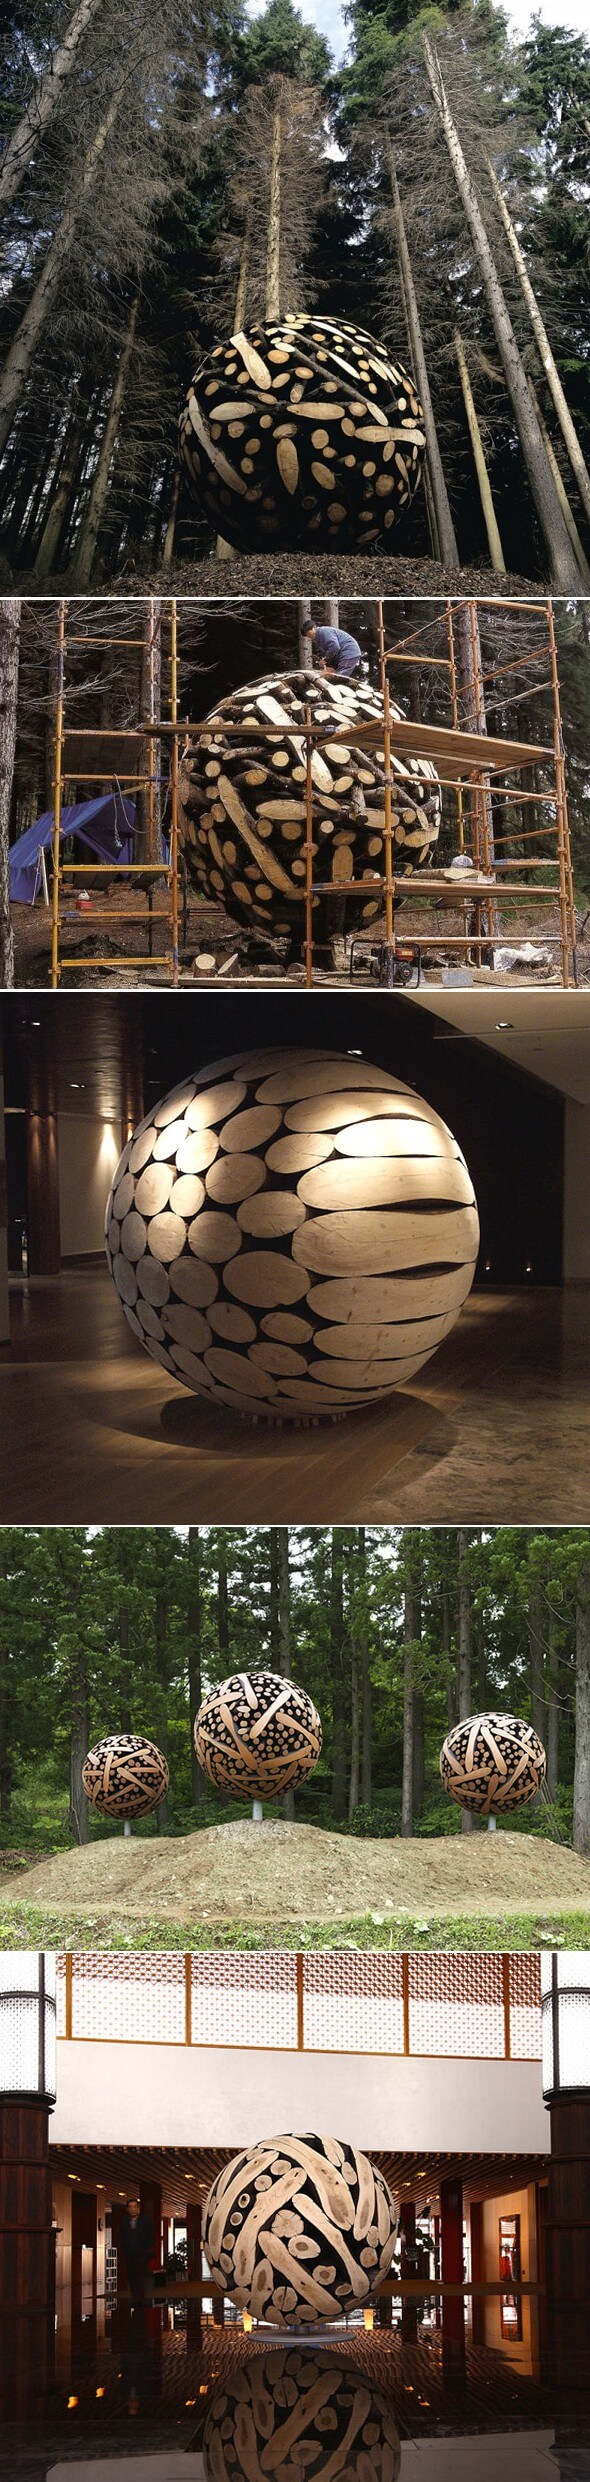 Giant Wooden Spheres | Best DIY Garden Globe Ideas & Designs